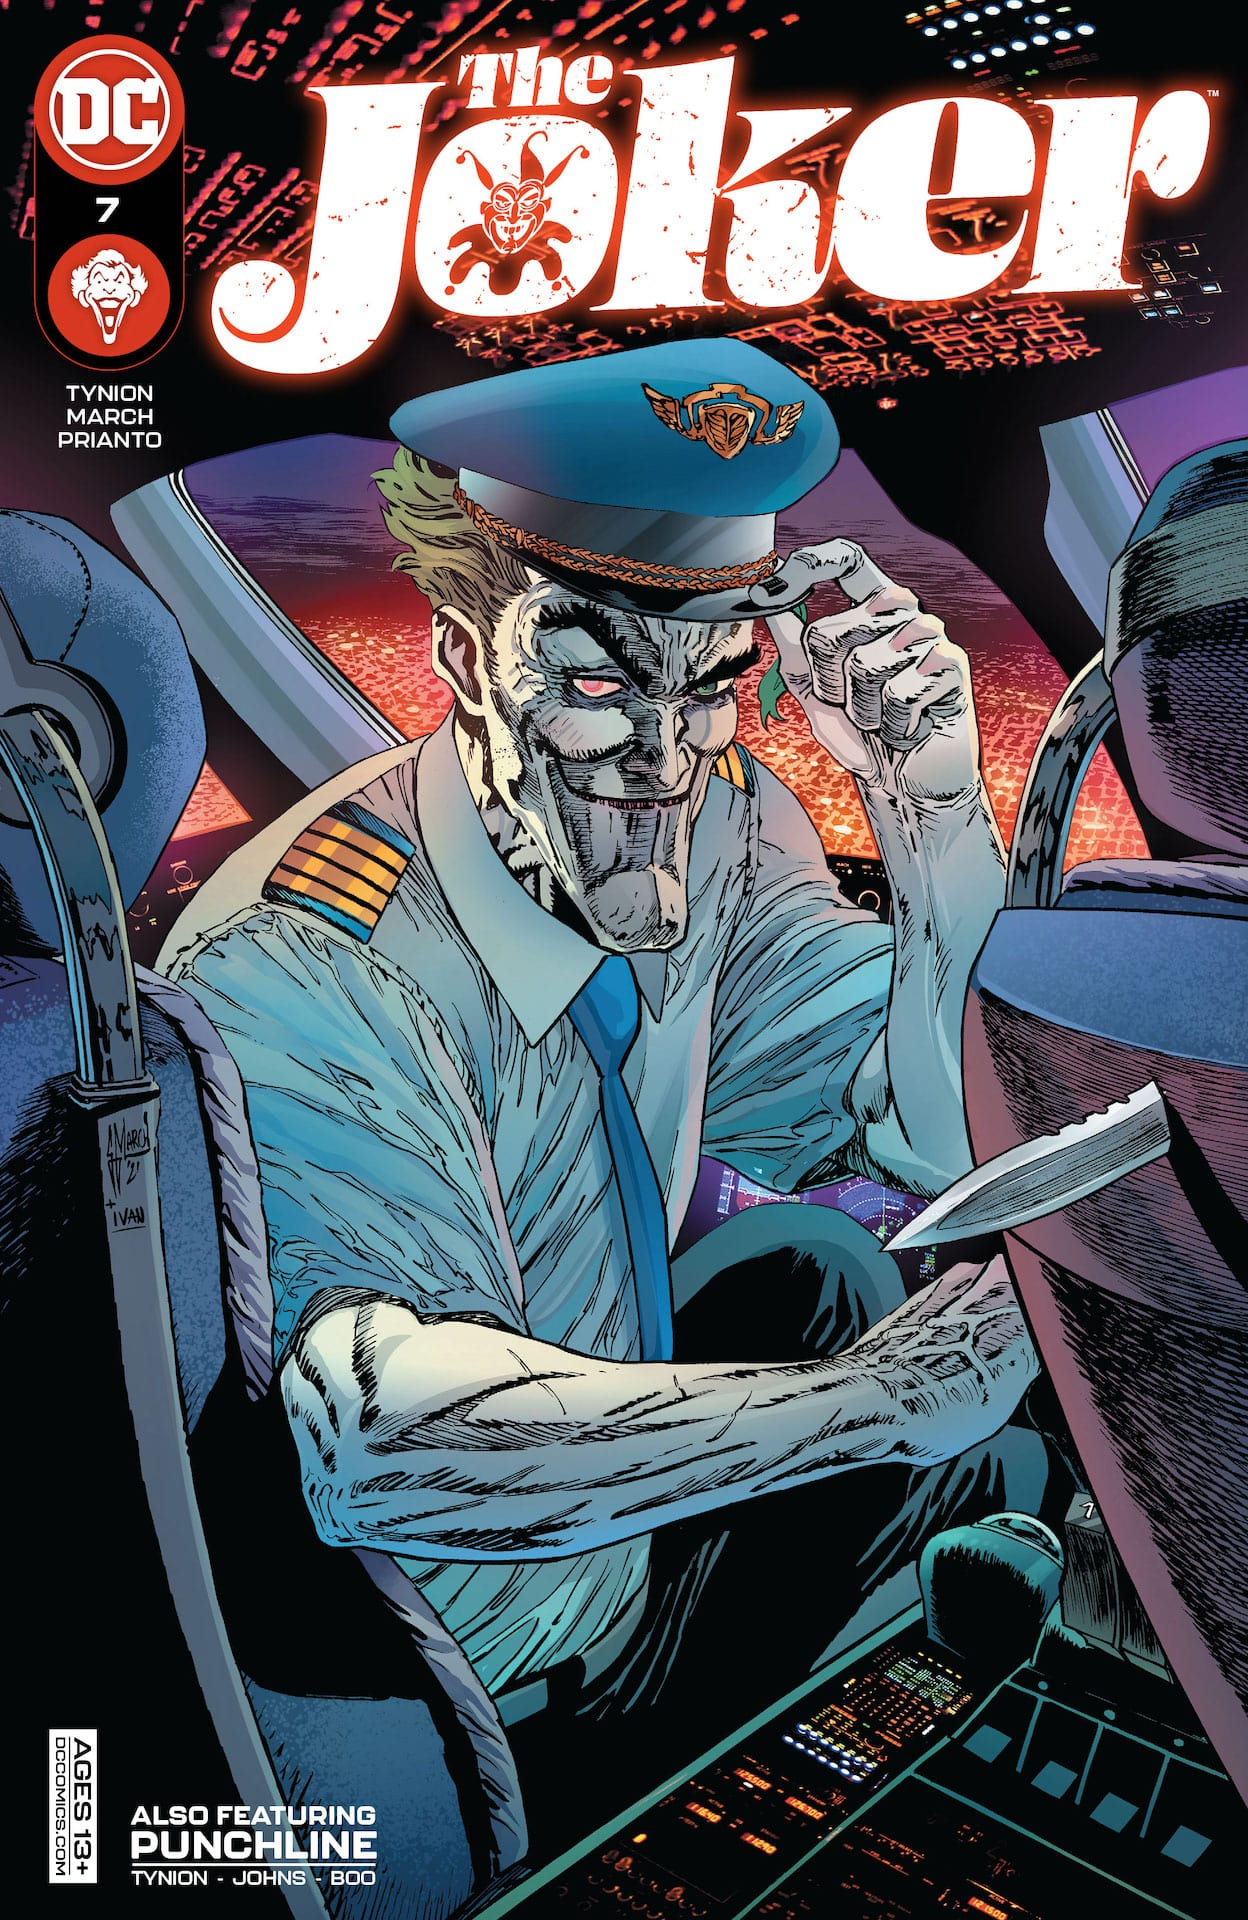 DC Preview: The Joker #7